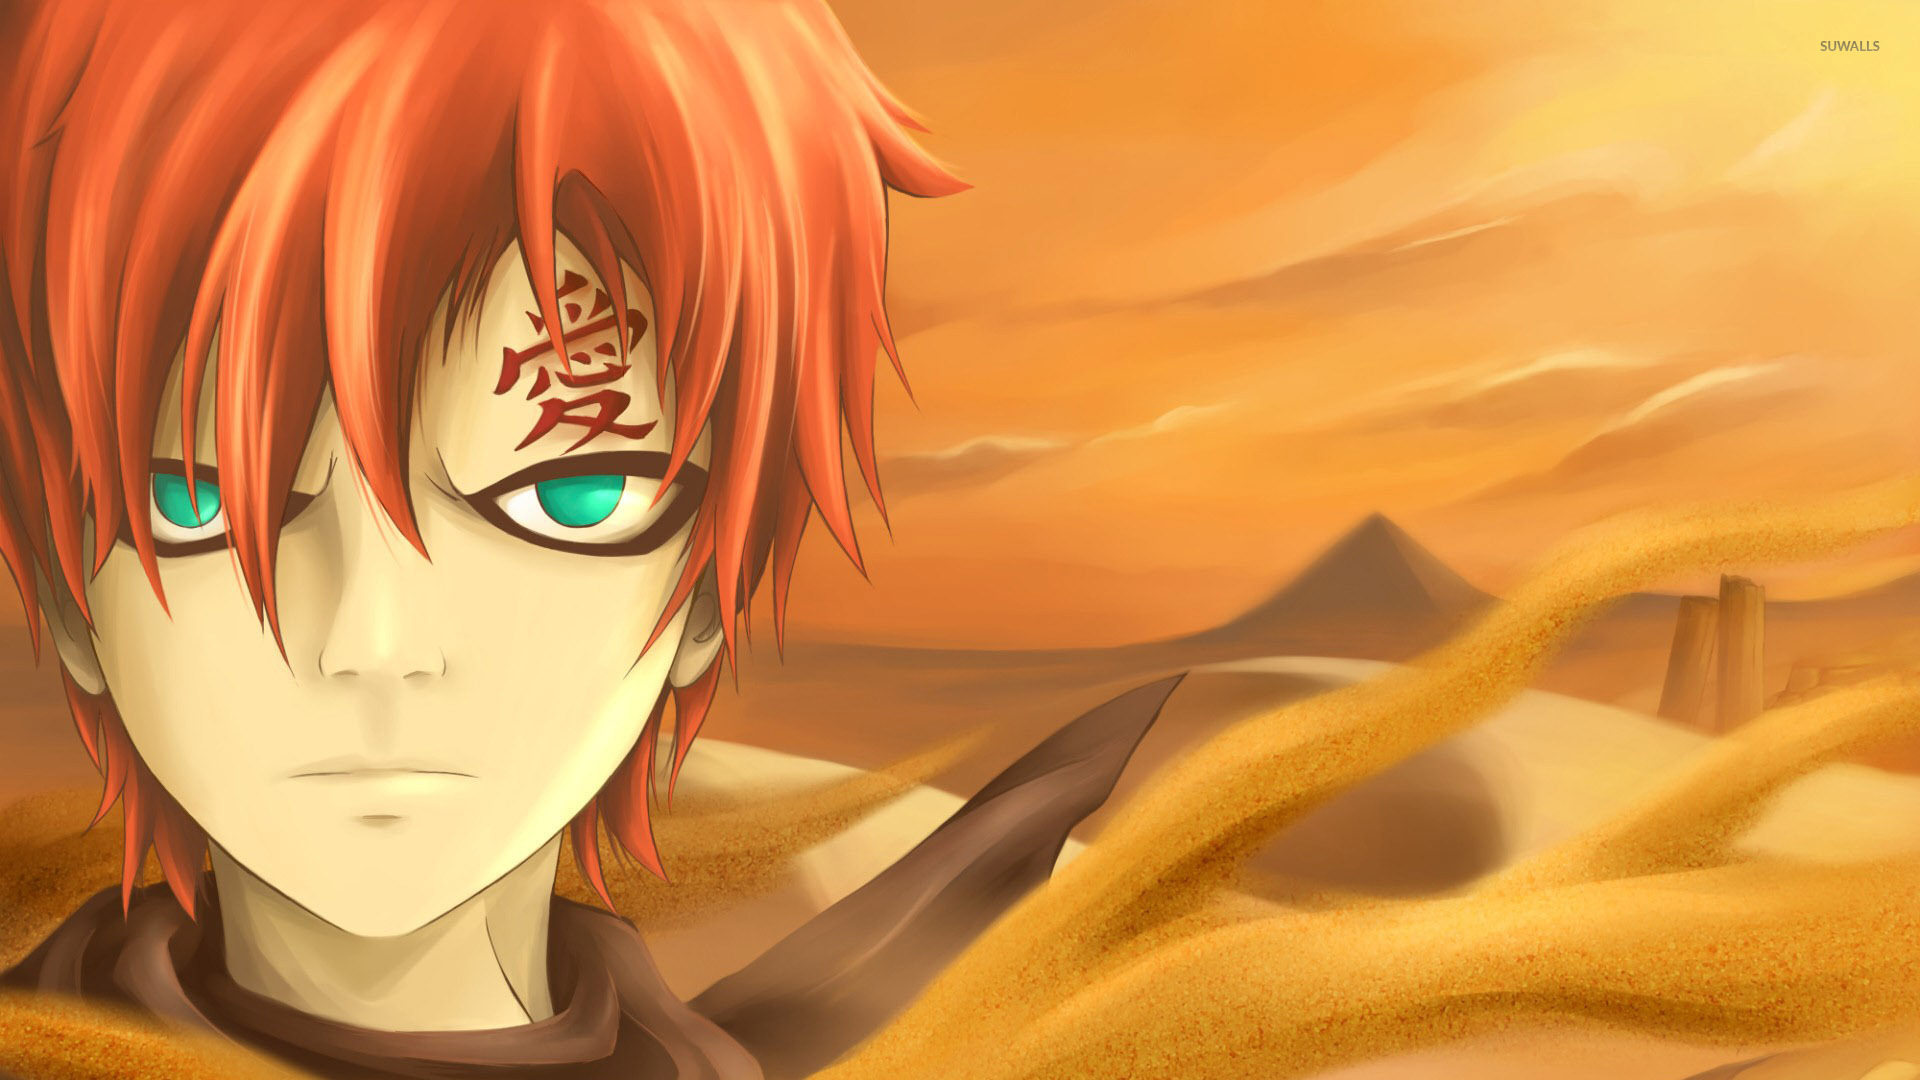 Gaara   Naruto wallpaper   Anime wallpapers   29982 1920x1080